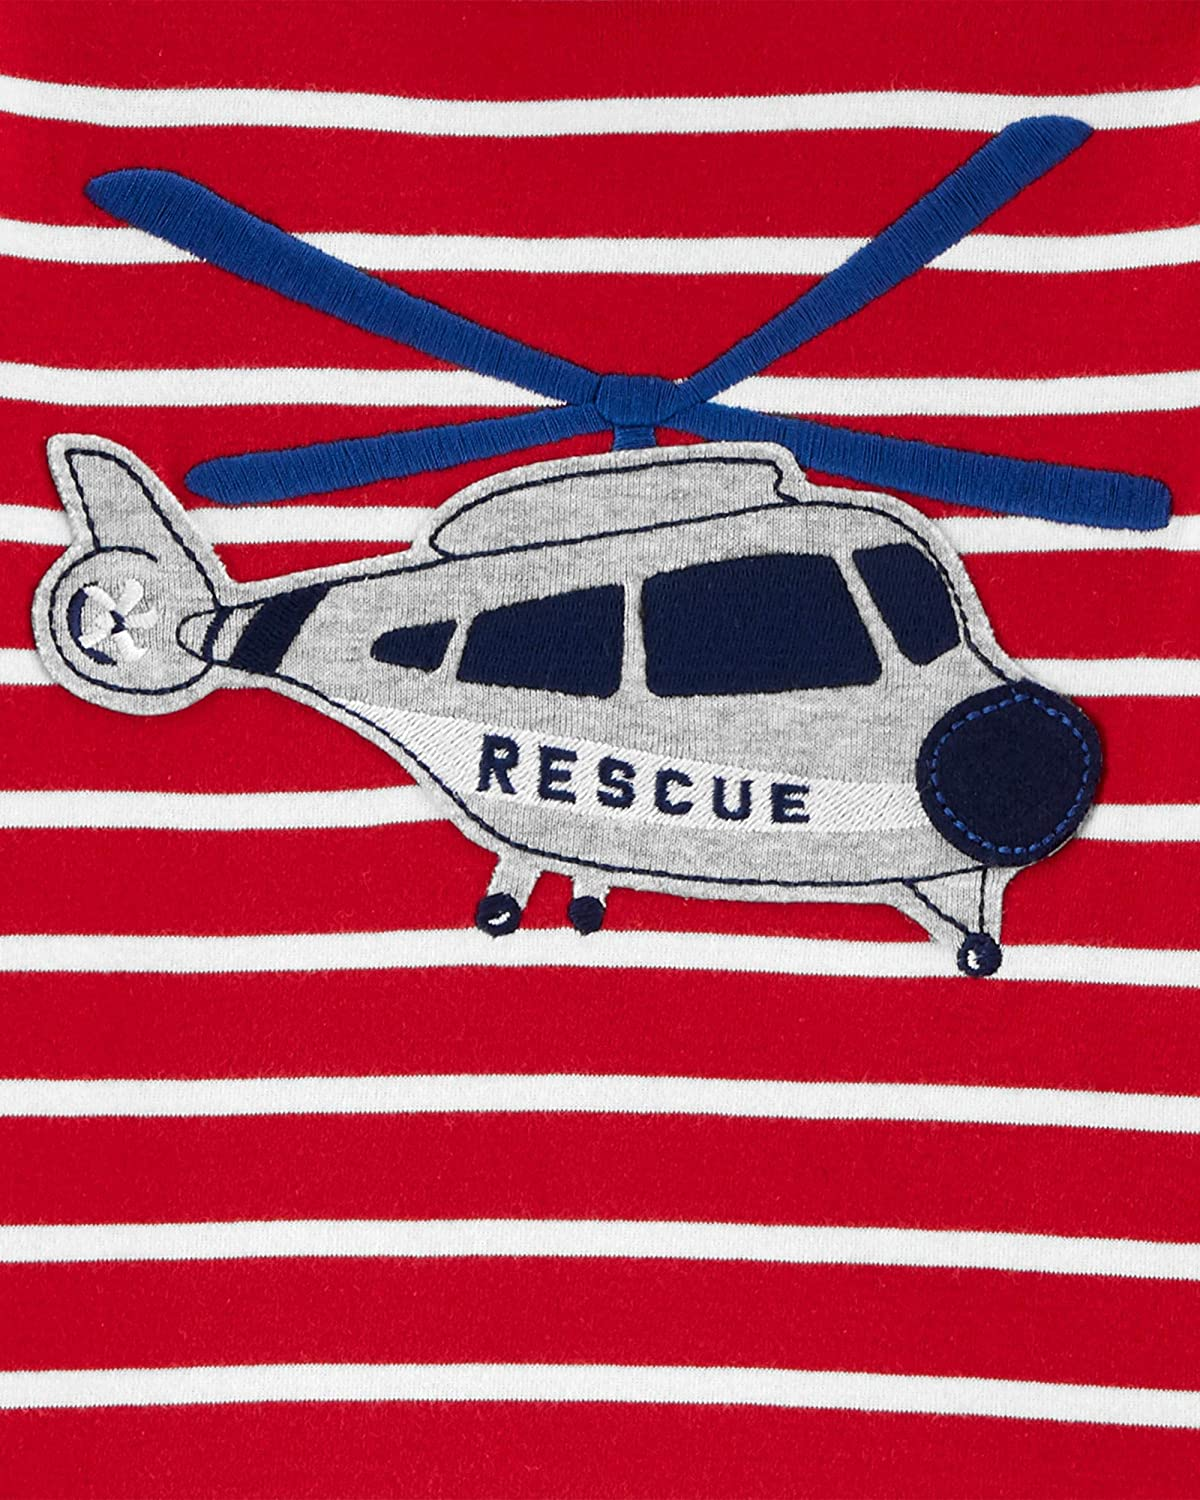 Carter's 4-Piece Baby-boy Sung fit Cotton Pajamas (Helicopter, 12m)